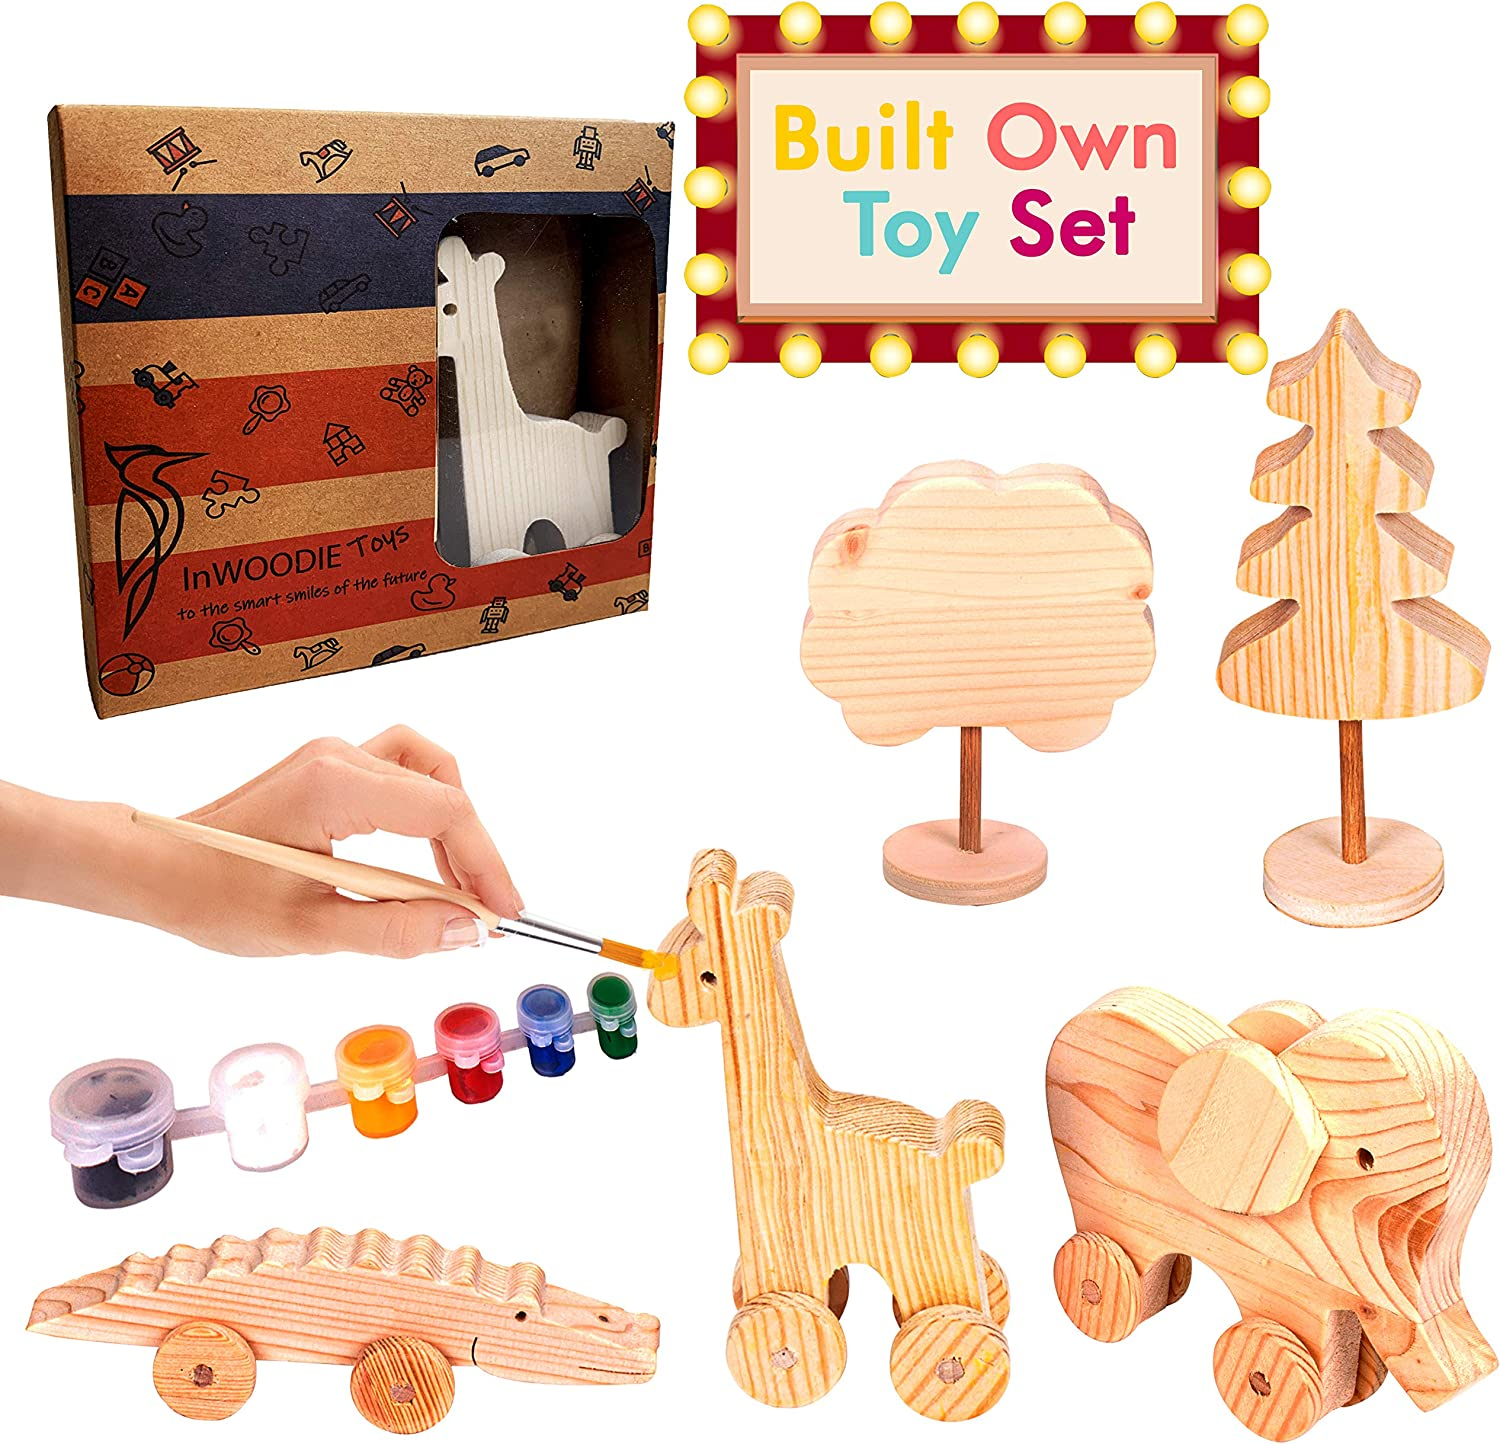 Wooden Toys, Paint Set for Kids 4-8, Craft for Kids Ages 4-8, Great Gift Toys for Boys Girls, Paint Your Own Elephant, Giraffe, Crocodile, Made from Organic Pine Tree, Best for 4, 5, 6 8 Years Olds